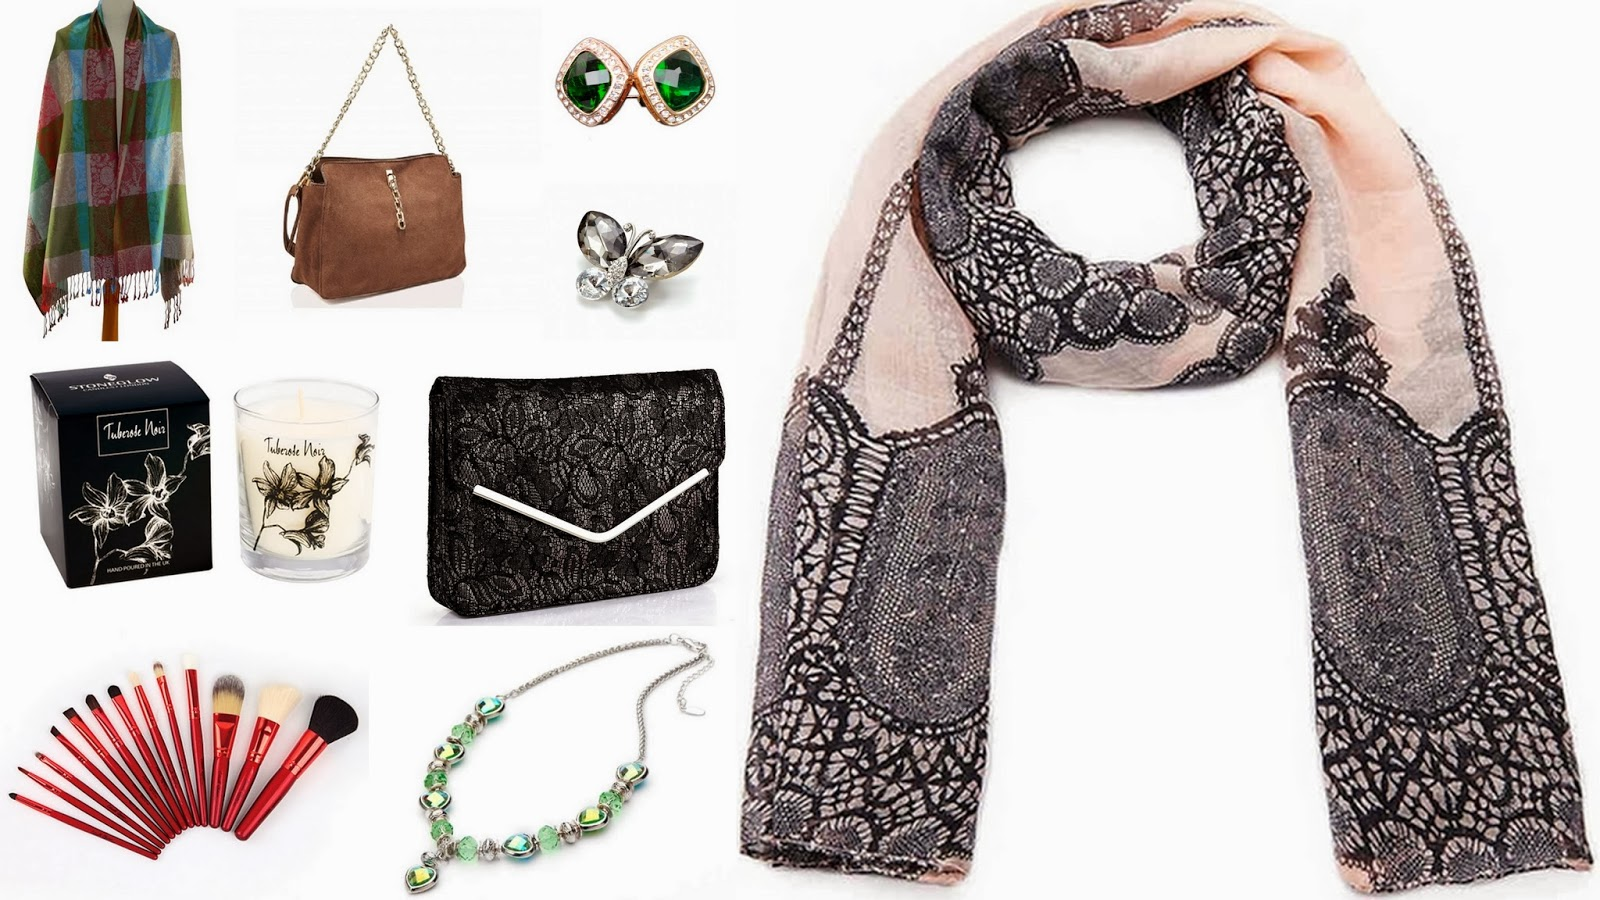 get gawjus: mother's day gift ideas